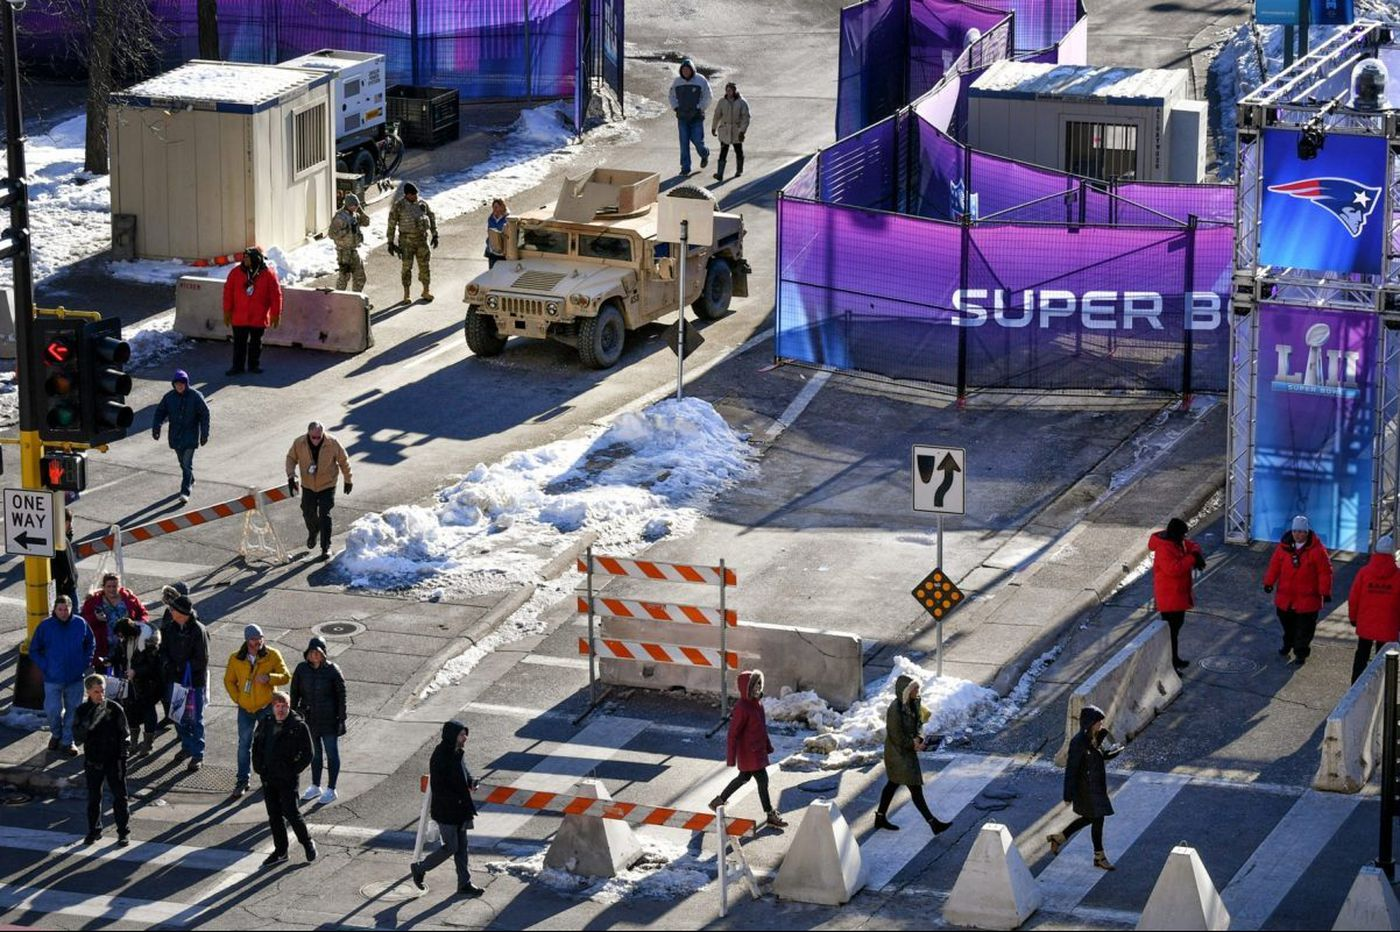 With Super Bowl celebrations in full swing, downtown Minneapolis takes on military feel